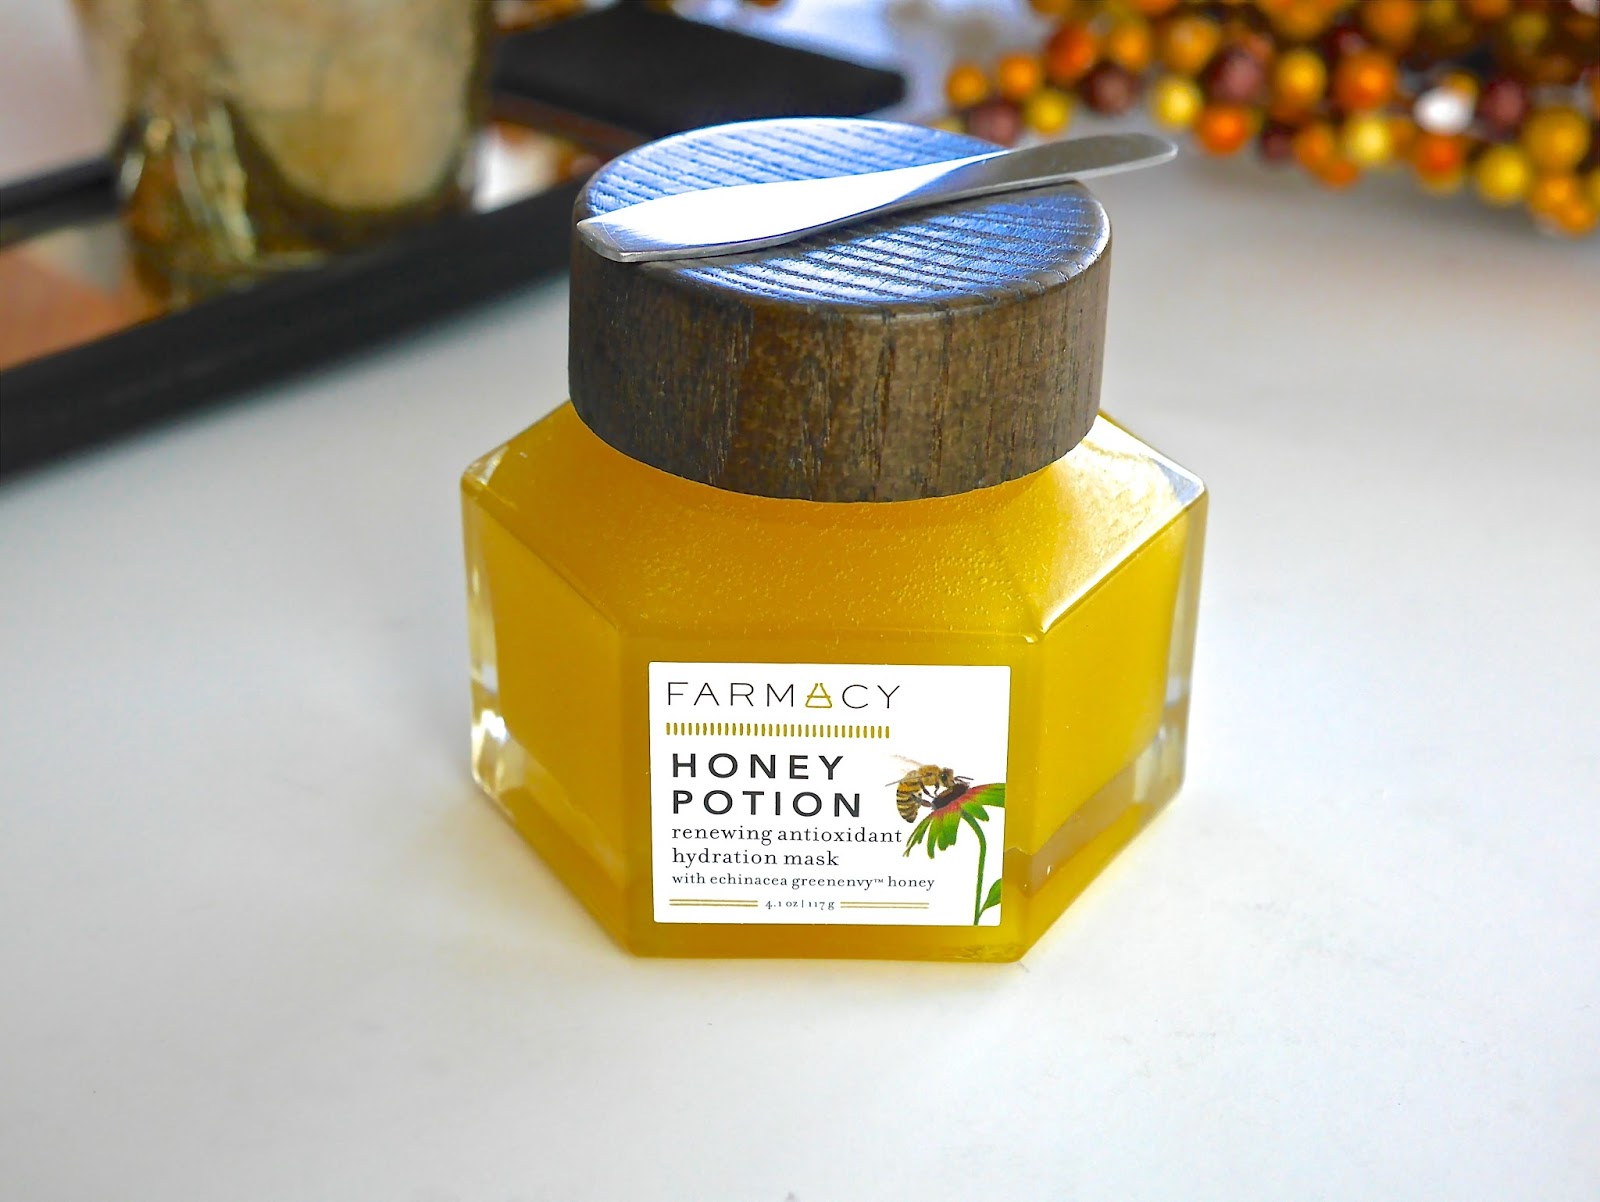 cruelty free, not tested on animals, natural, good for you, face mask, facial mask, parabens free